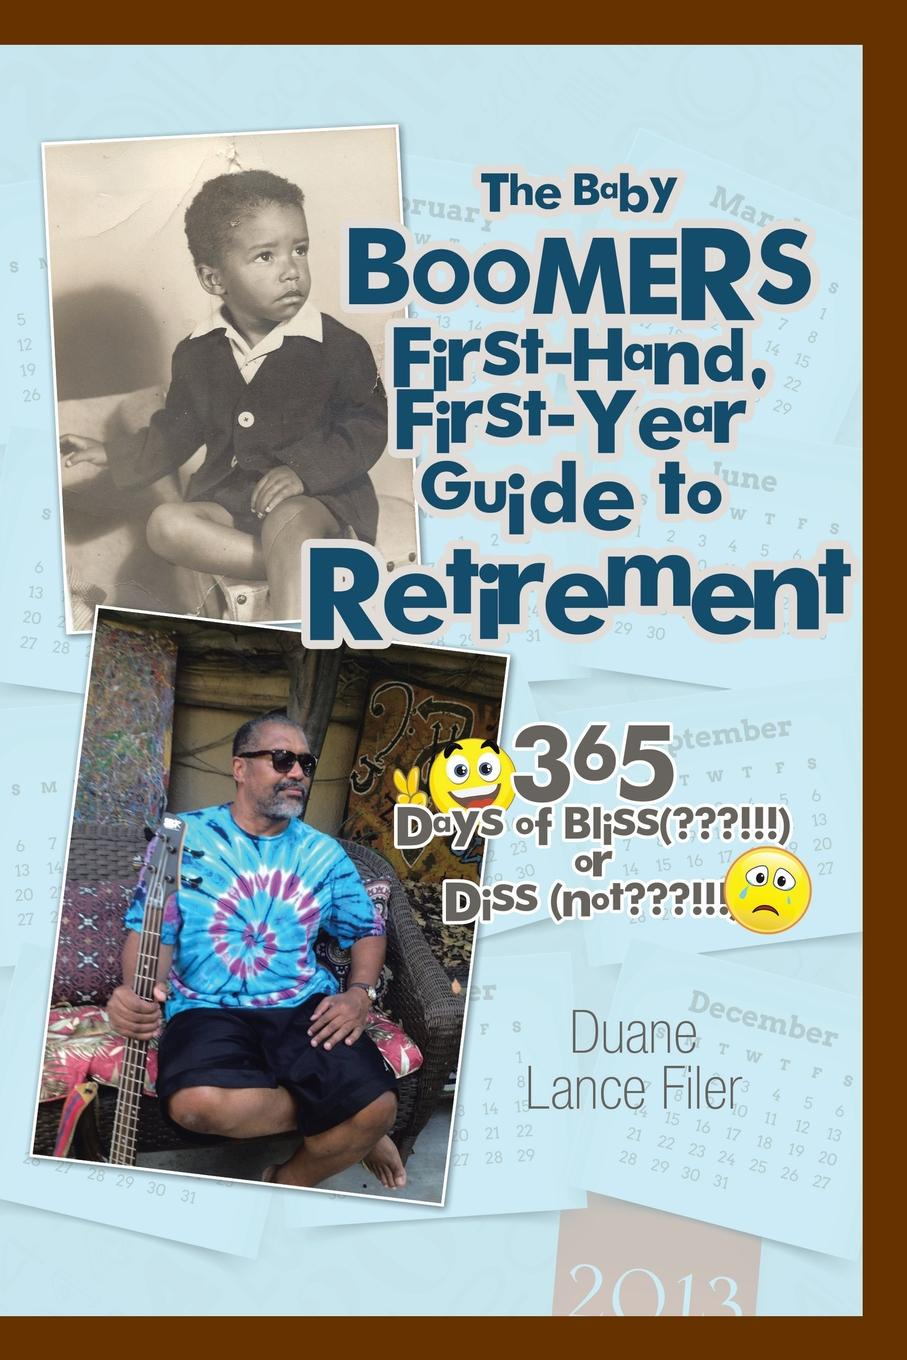 купить Duane Lance Filer The Baby Boomers First-Hand, First-Year Guide to Retirement. 365 Days of Bliss( !!!)or Diss (Not !!!) дешево